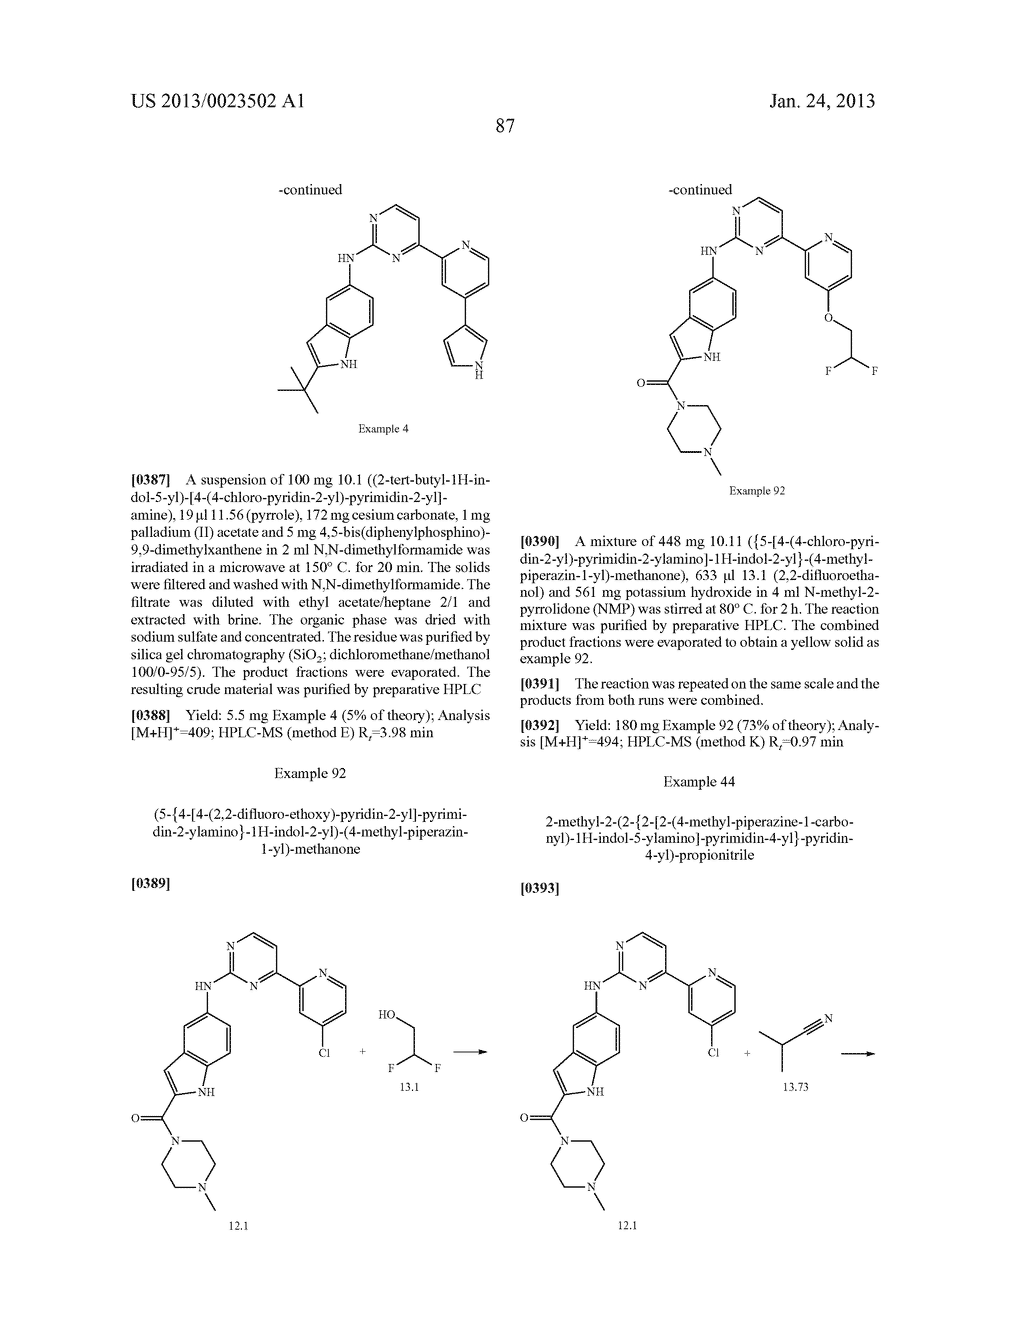 SUBSTITUTED PYRIDINYL-PYRIMIDINES AND THEIR USE AS MEDICAMENTS - diagram, schematic, and image 88